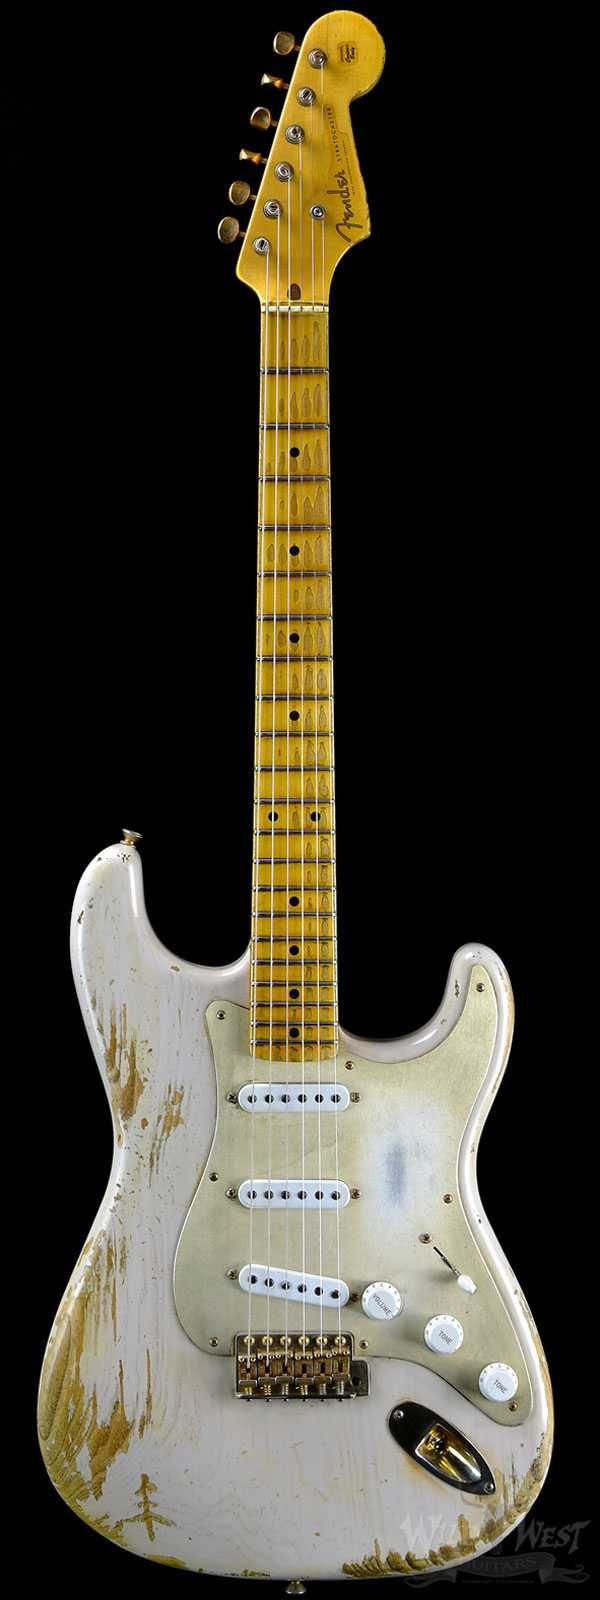 Fender Custom Shop Limited Edition Golden 50's 1954 Heavy Relic Stratocaster Dirty White Blonde